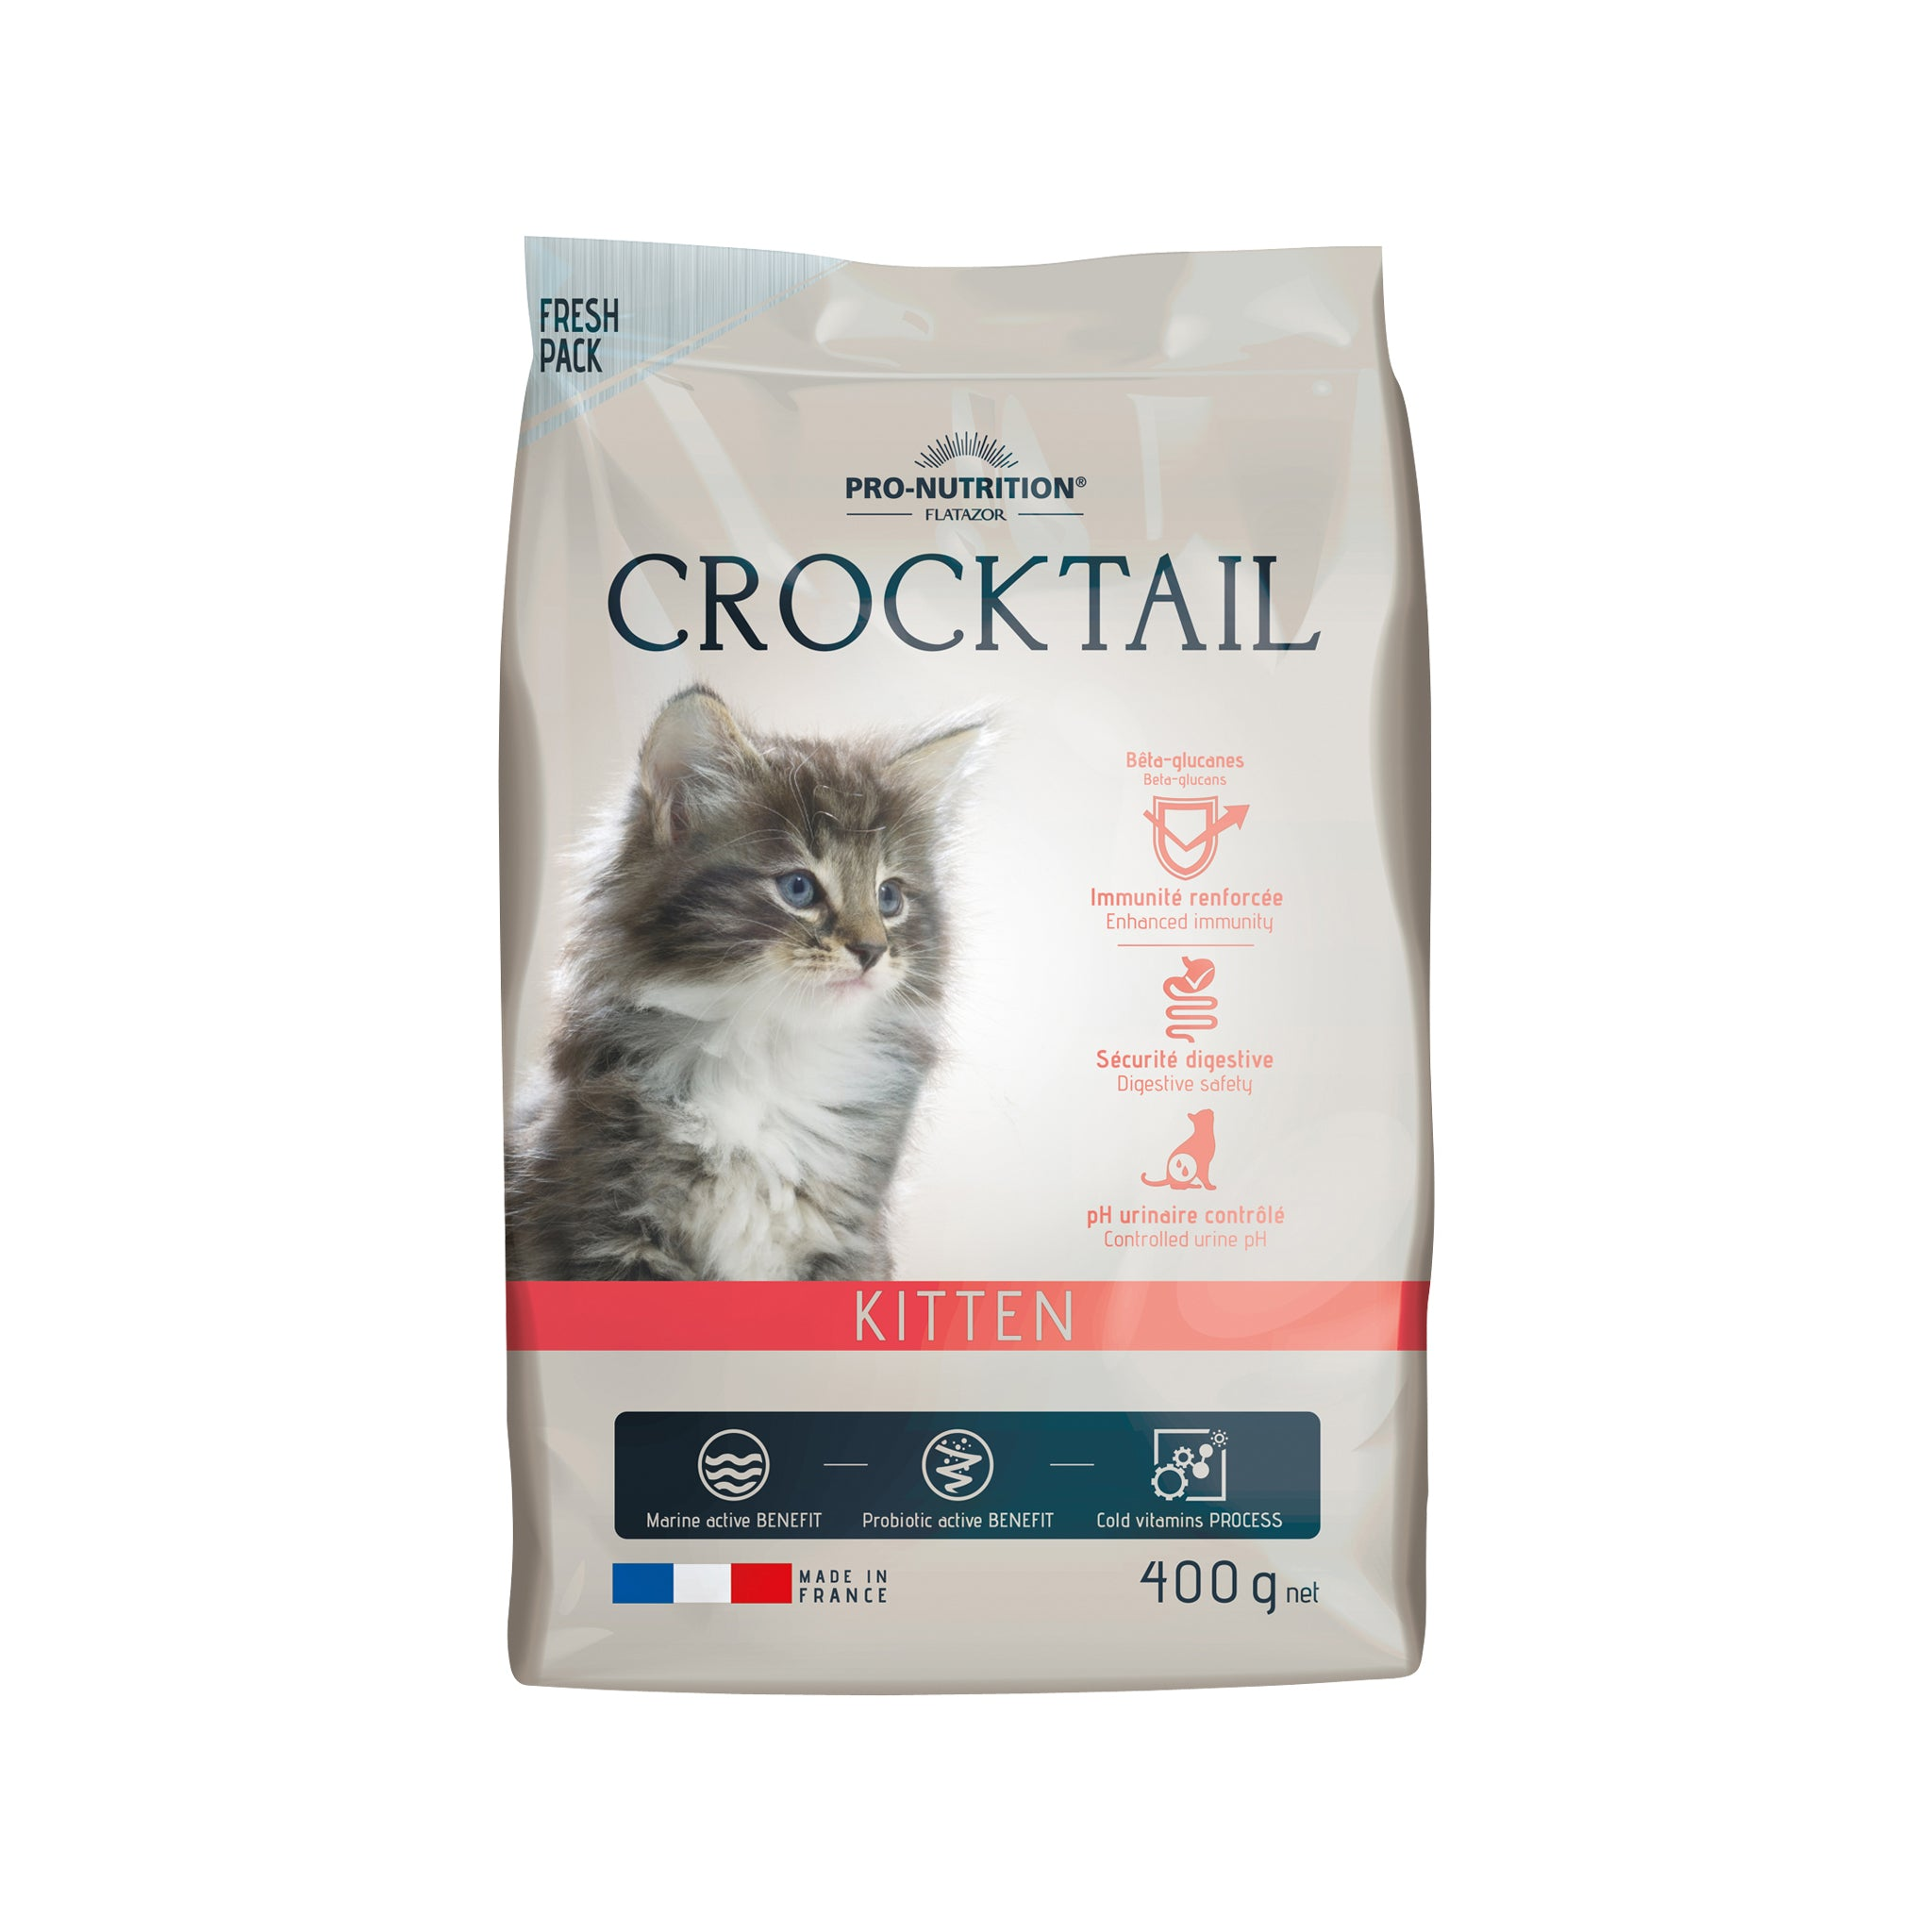 Crocktail Kitten 400g.